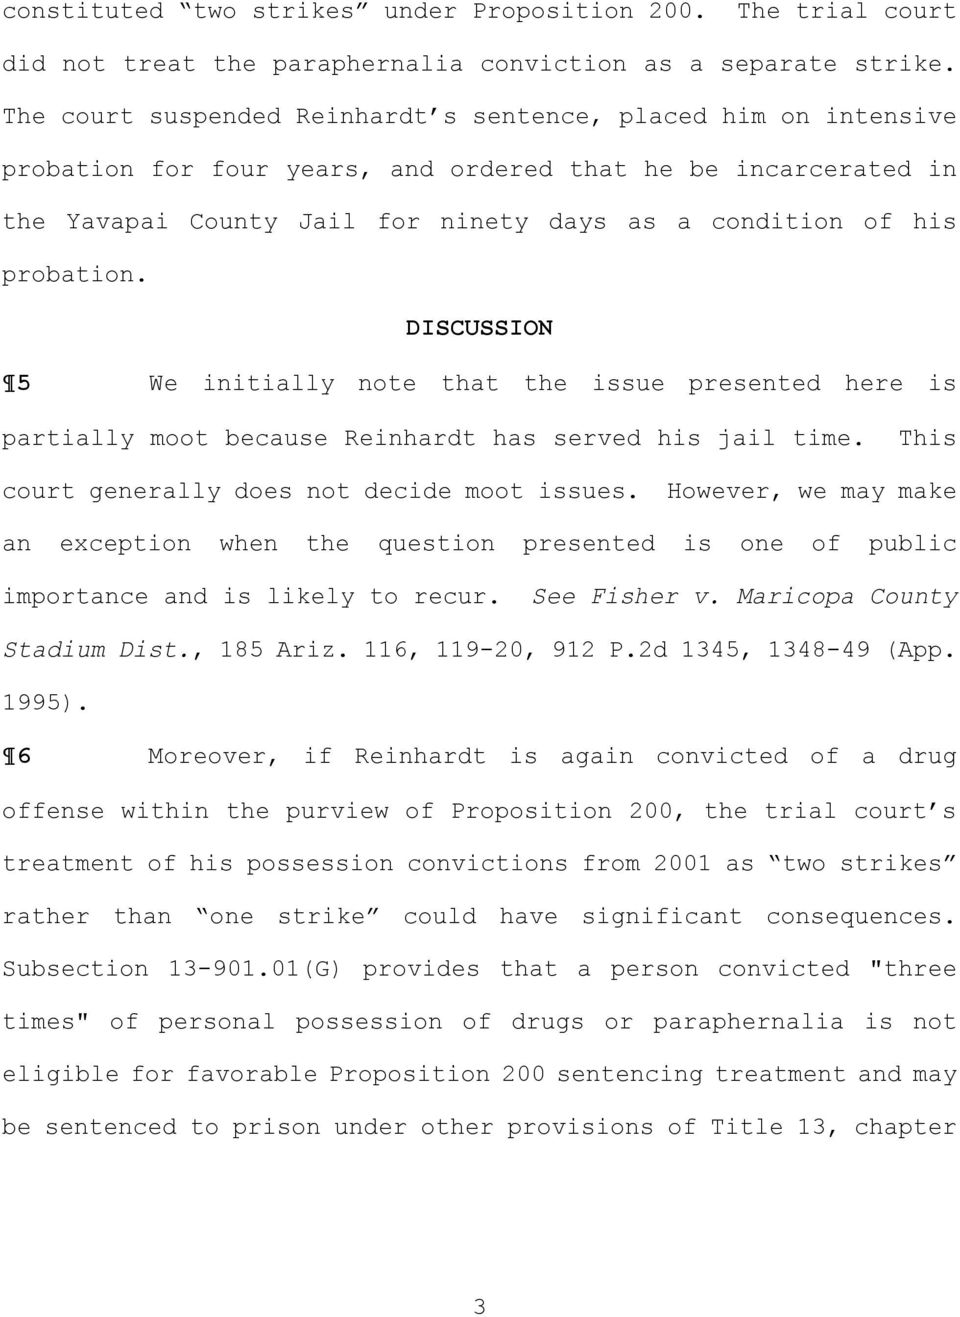 probation. DISCUSSION 5 We initially note that the issue presented here is partially moot because Reinhardt has served his jail time. This court generally does not decide moot issues.